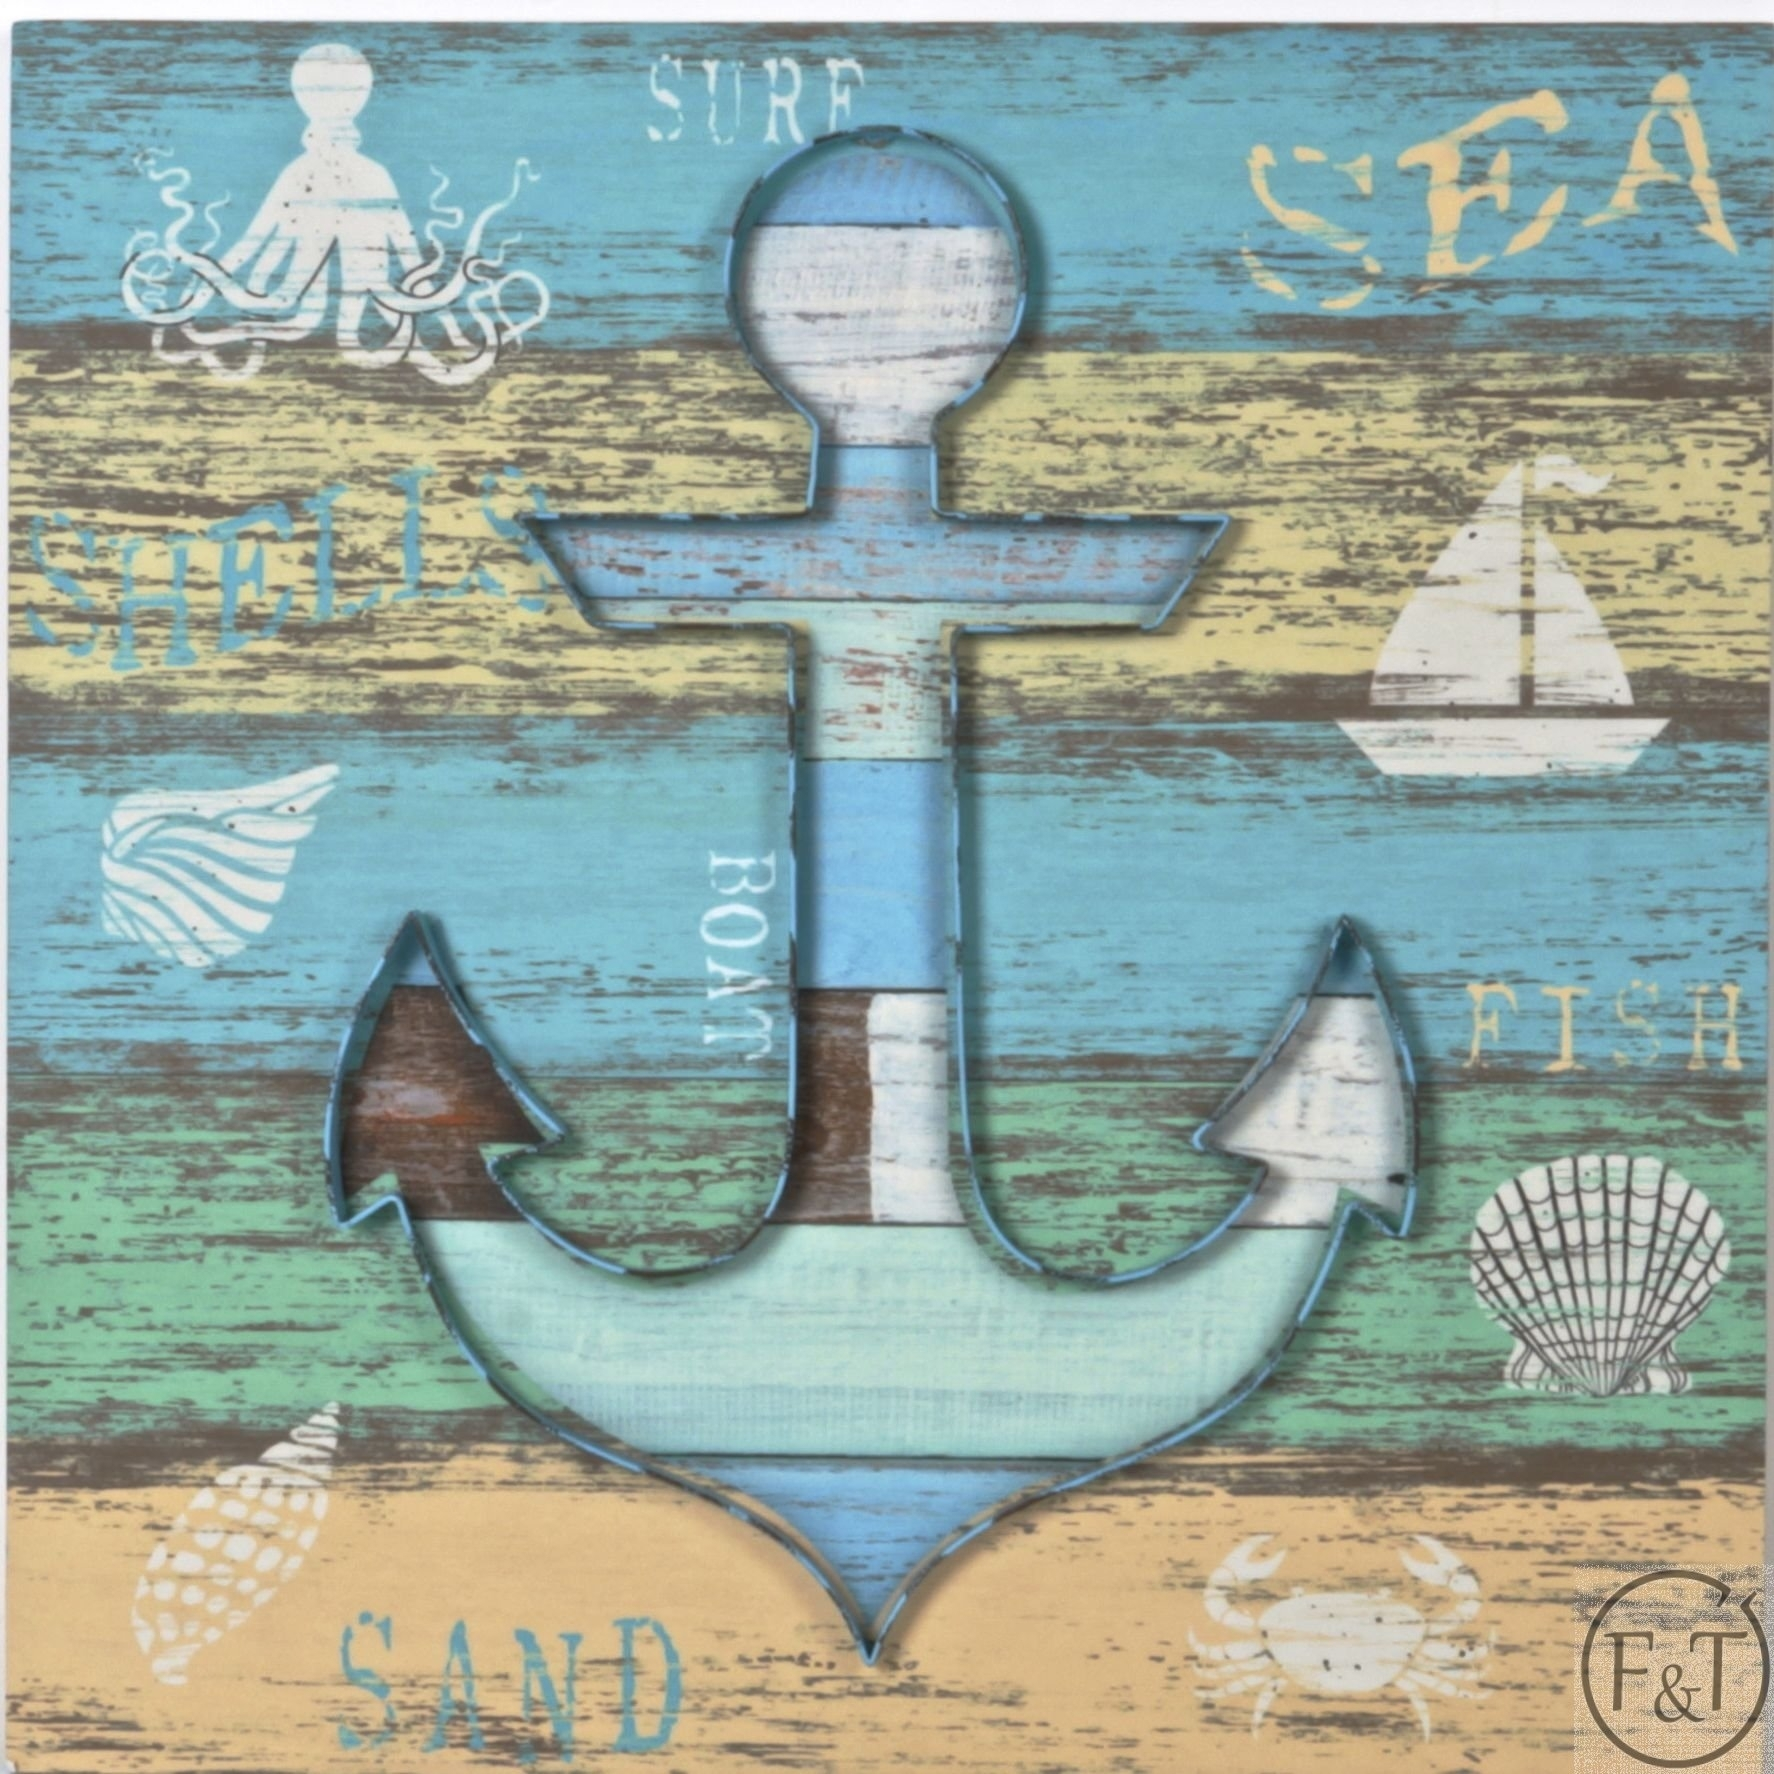 Buy Wood And Metal Anchor Wall Art Wholesale In Canada At Forpost For Latest Anchor Wall Art (View 11 of 20)